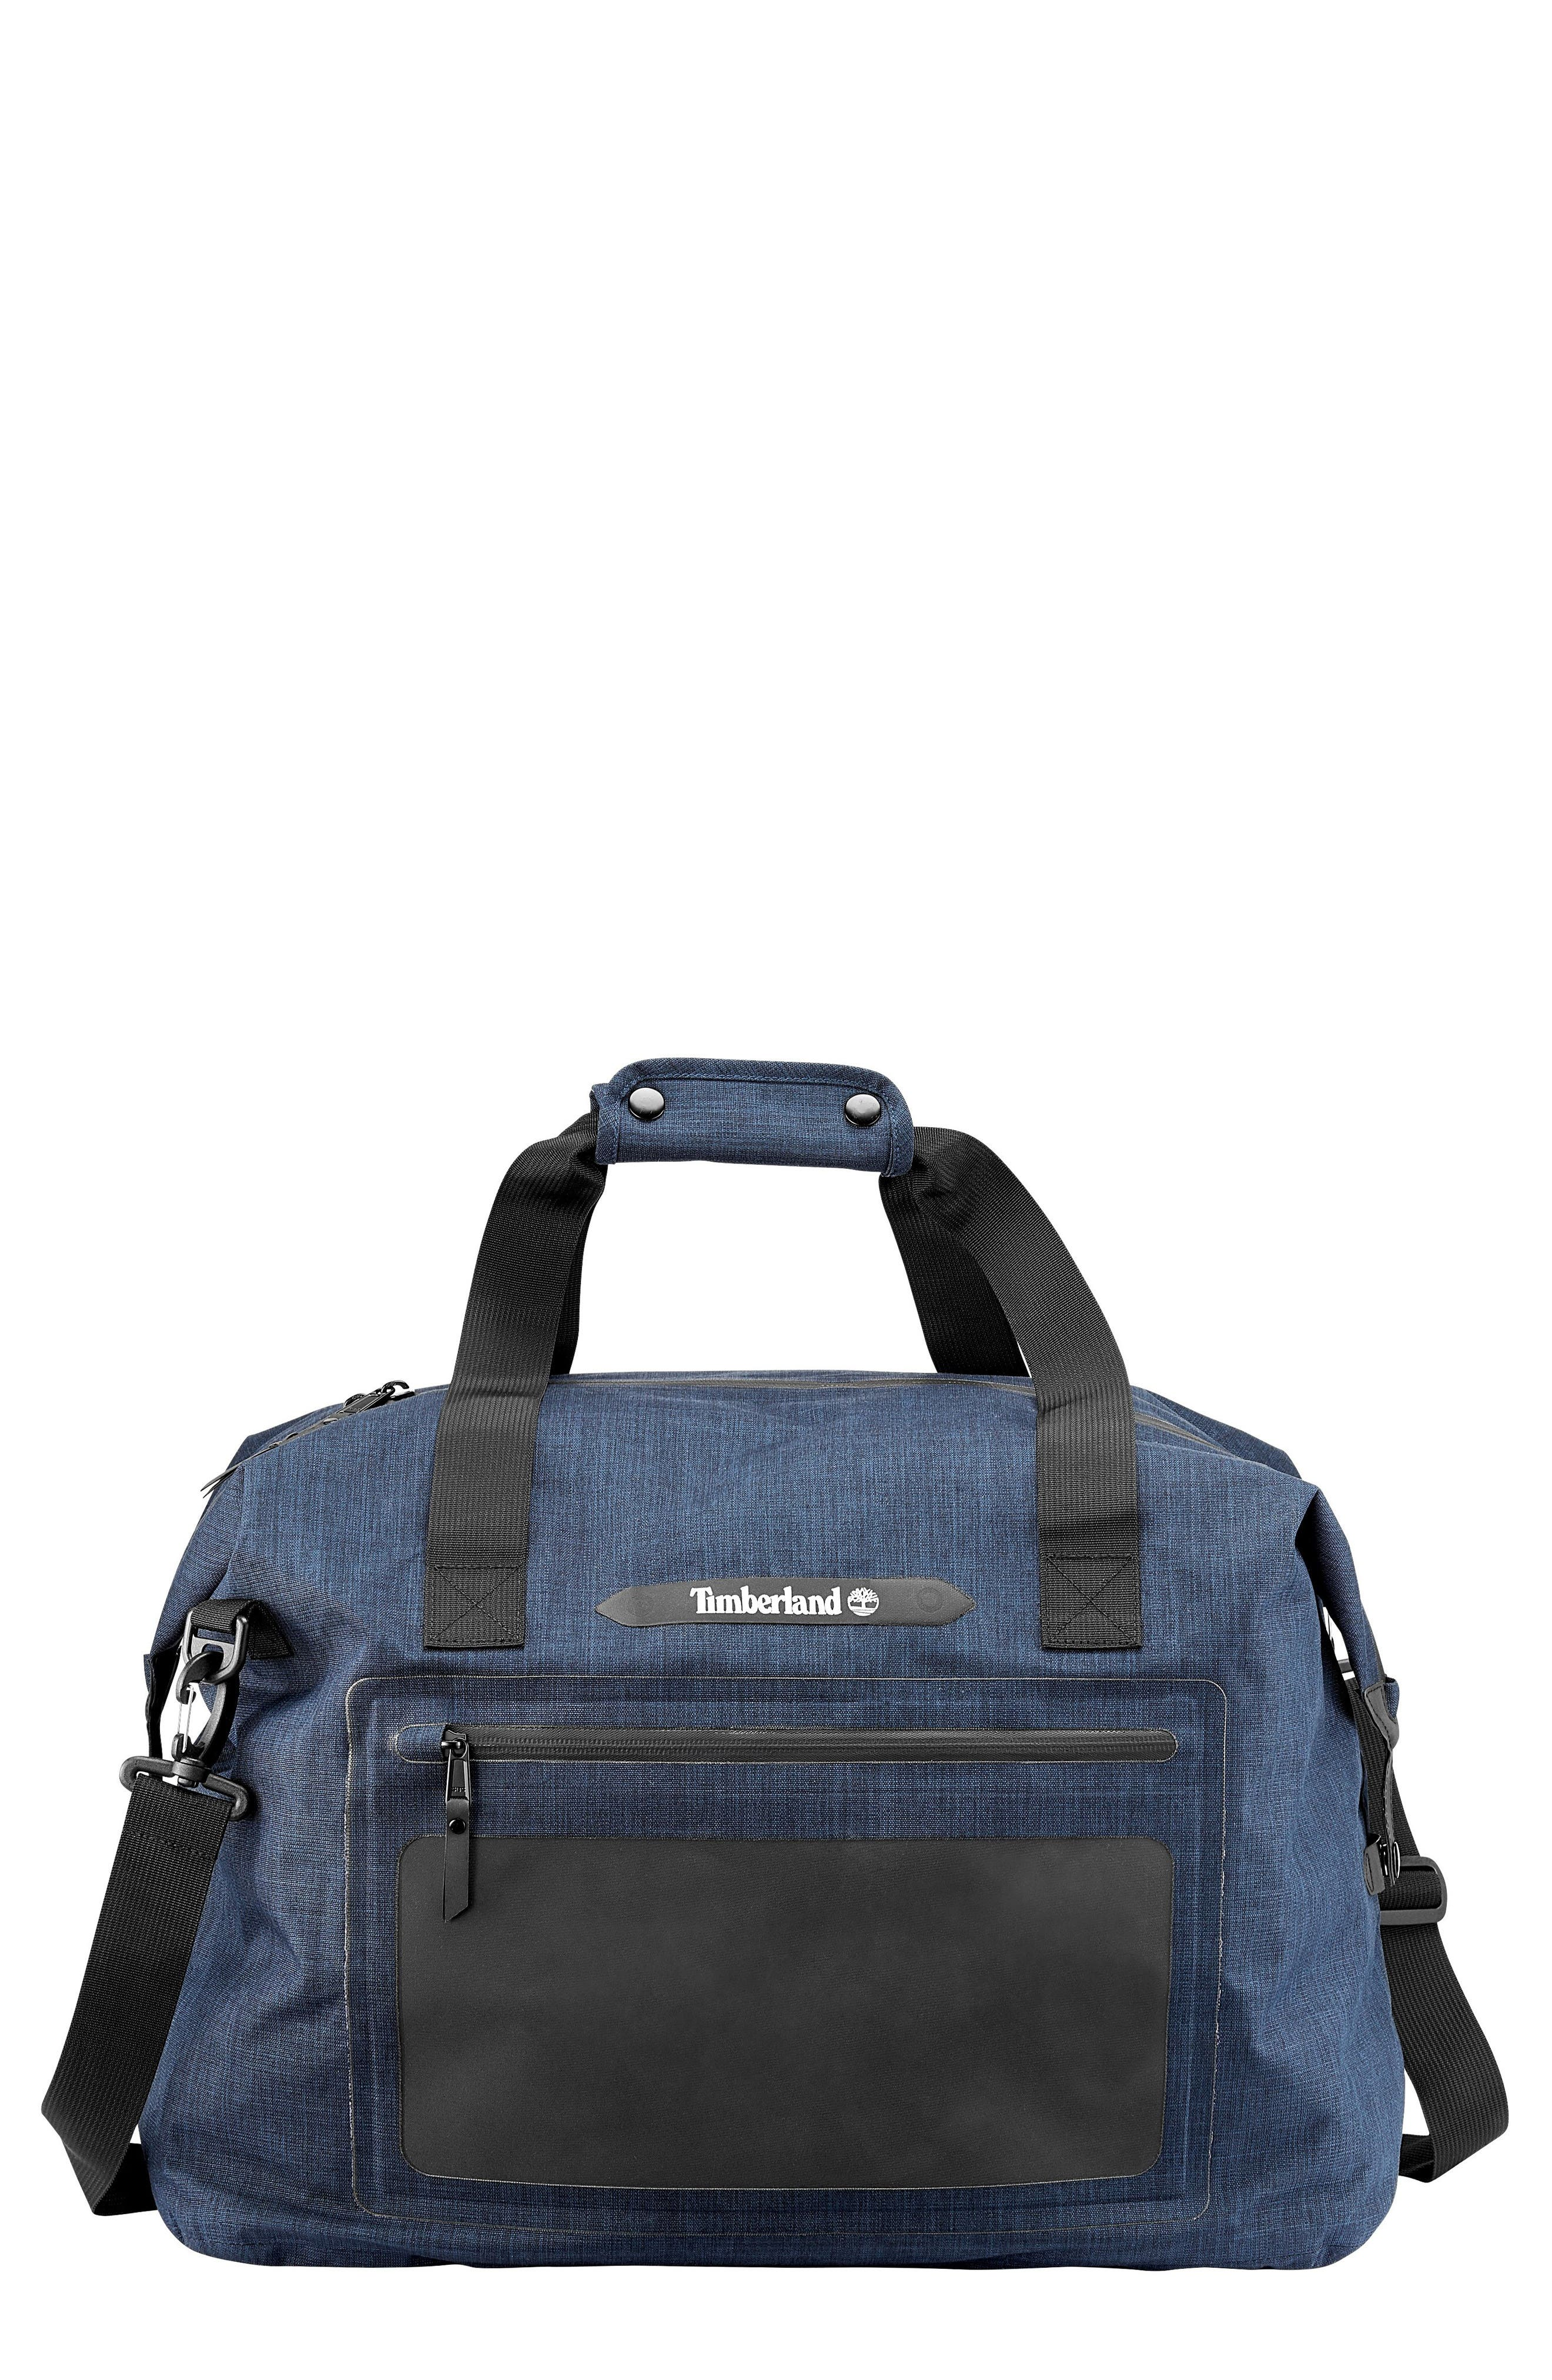 Timberland Baxter Lake Waterproof Duffel